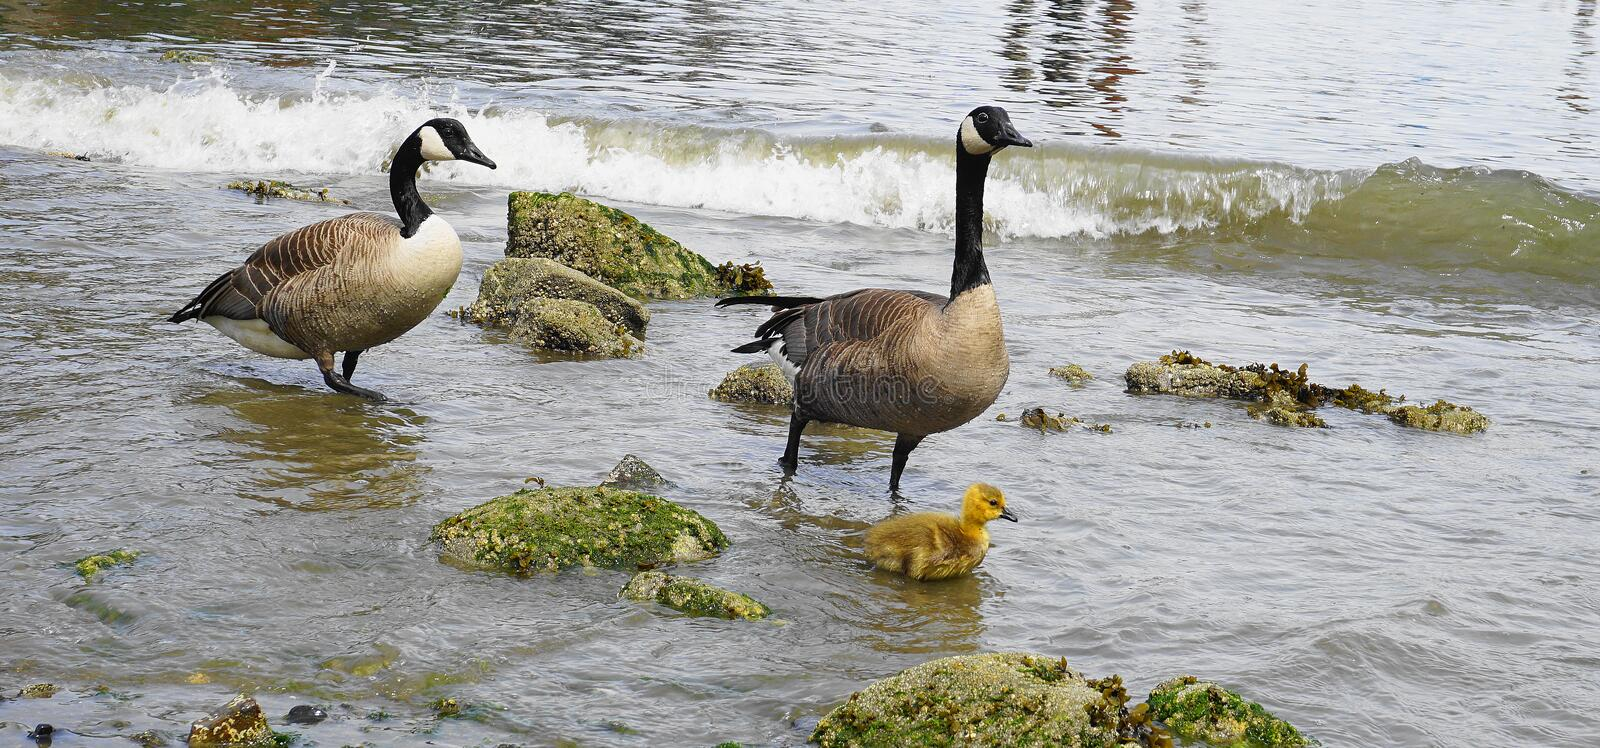 Family of Canadian geese with young gosling with yellow plumage swim in water close up. Pacific ocean background royalty free stock photos